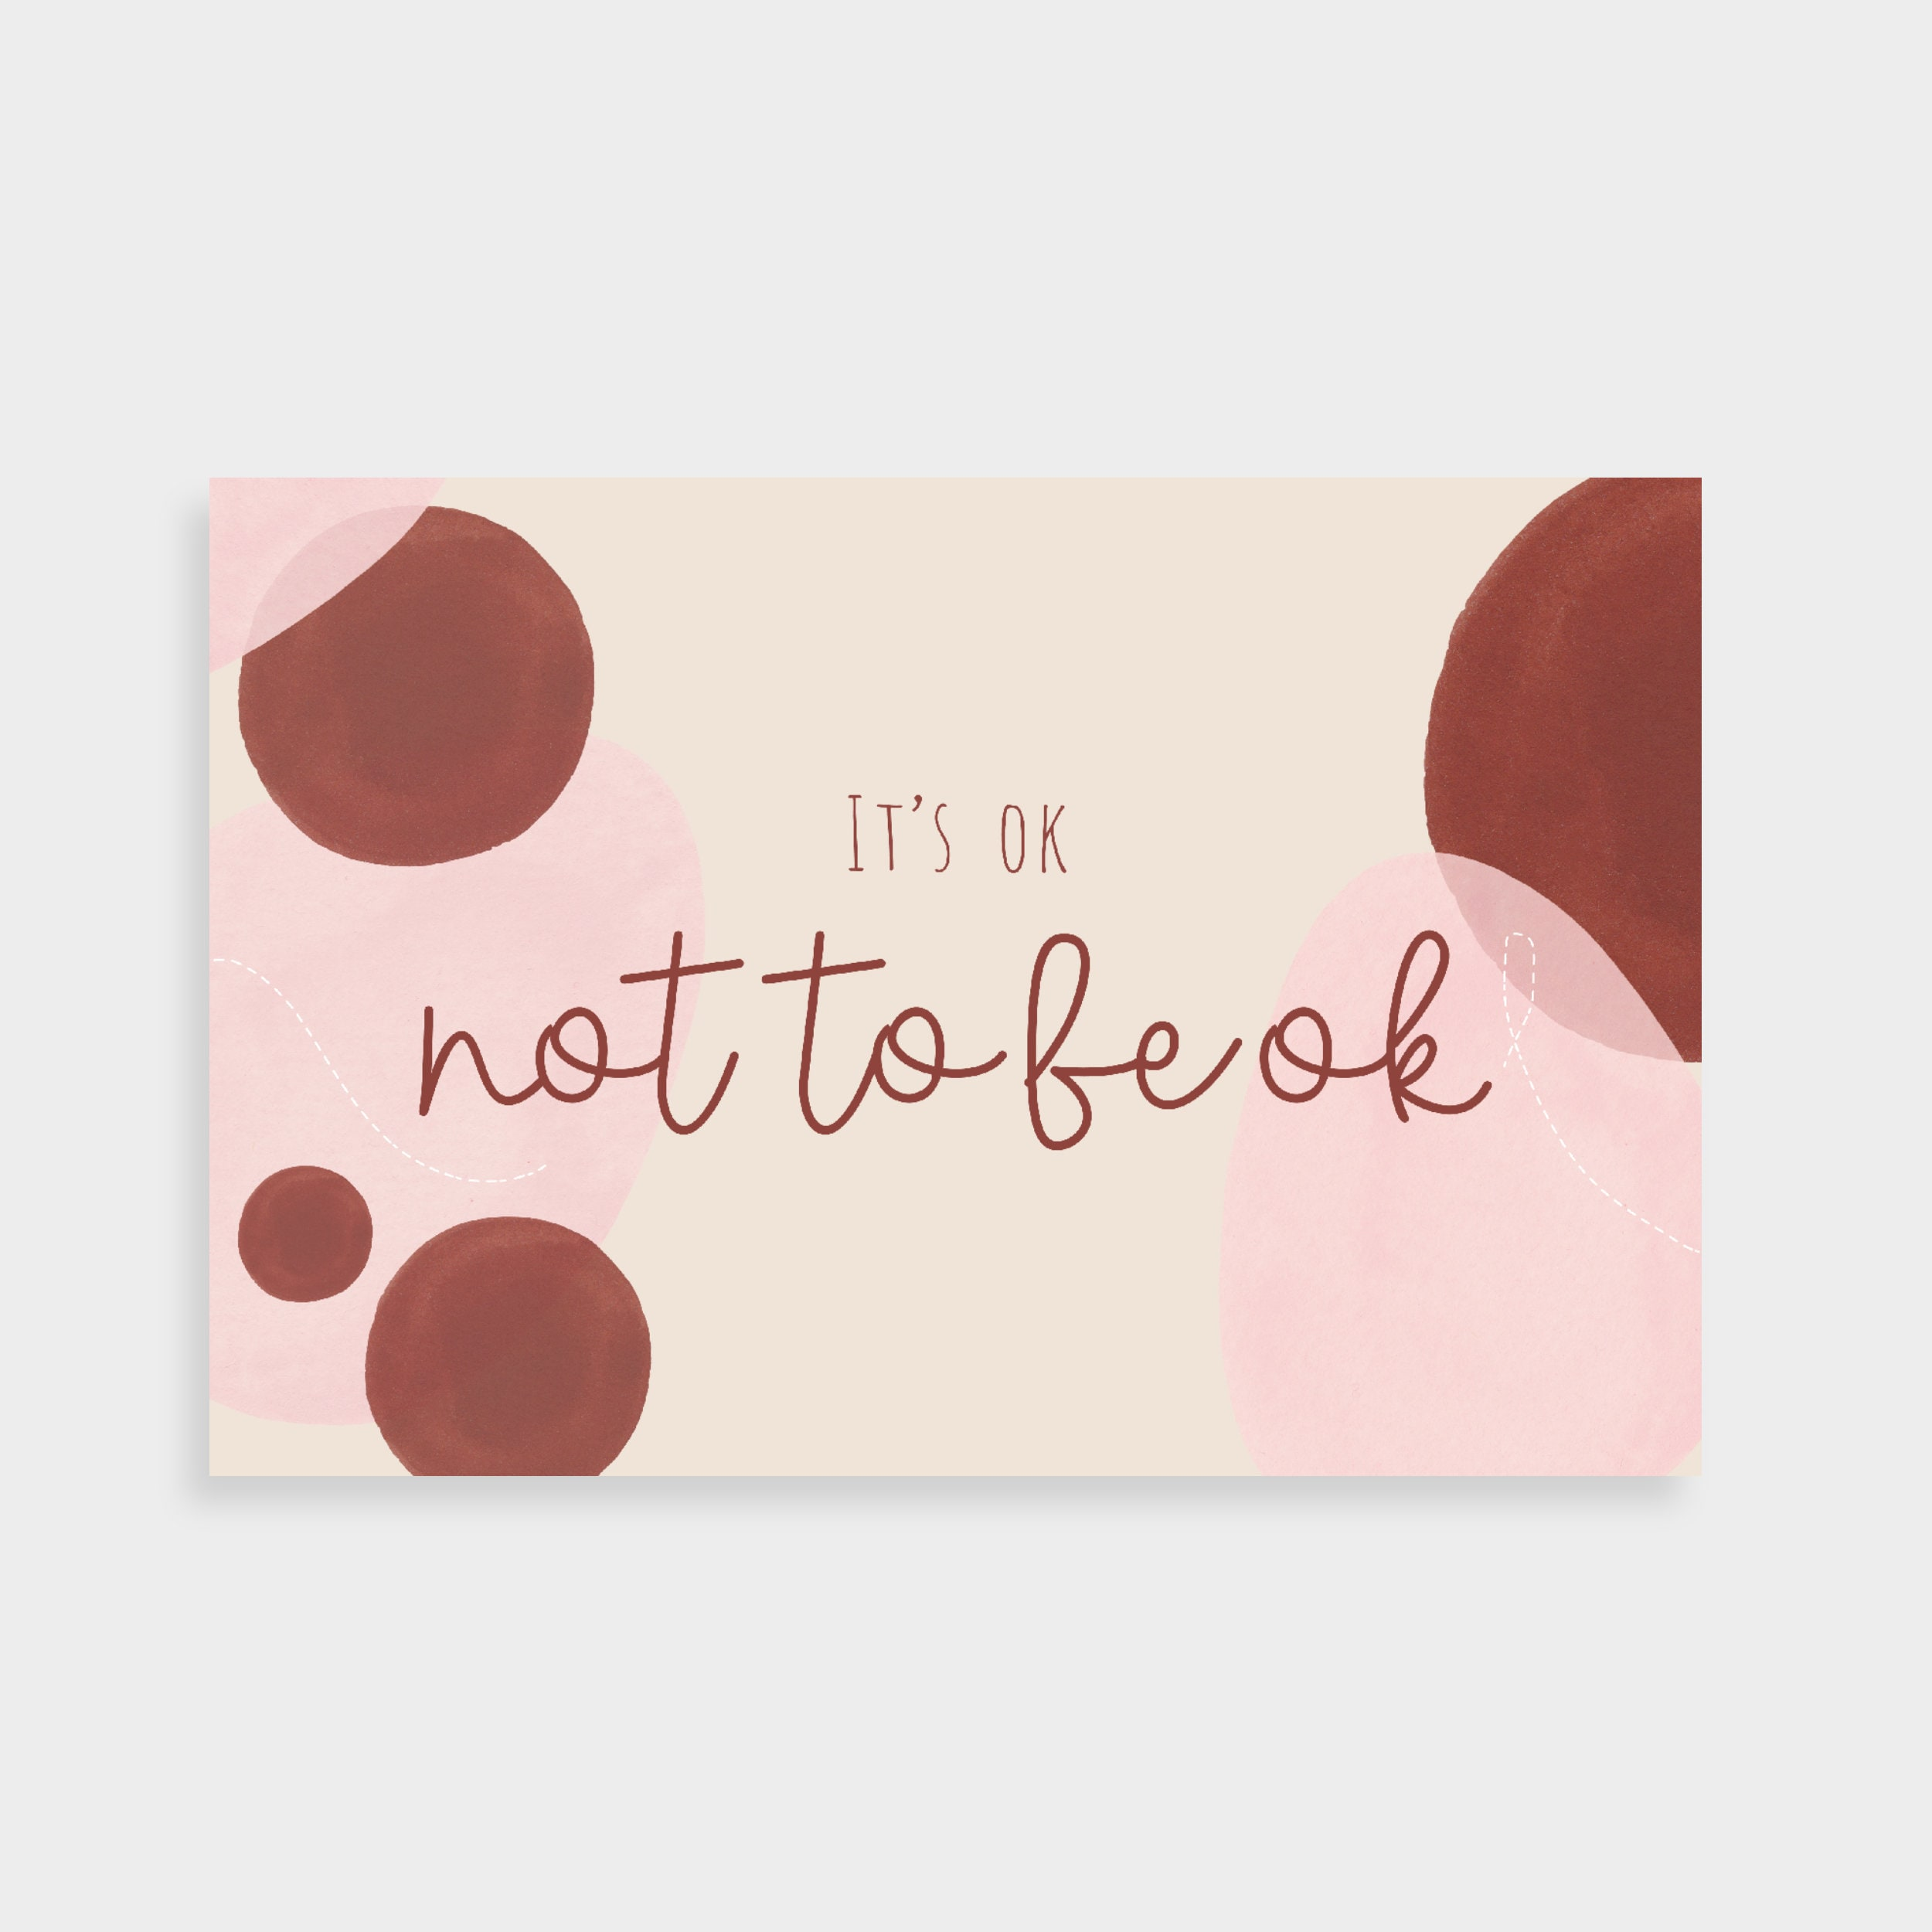 """Cream postcard with overlapping pink and burgundy shapes and abstract line drawings. Postcard says """"It's ok not to be ok"""" in the middle."""